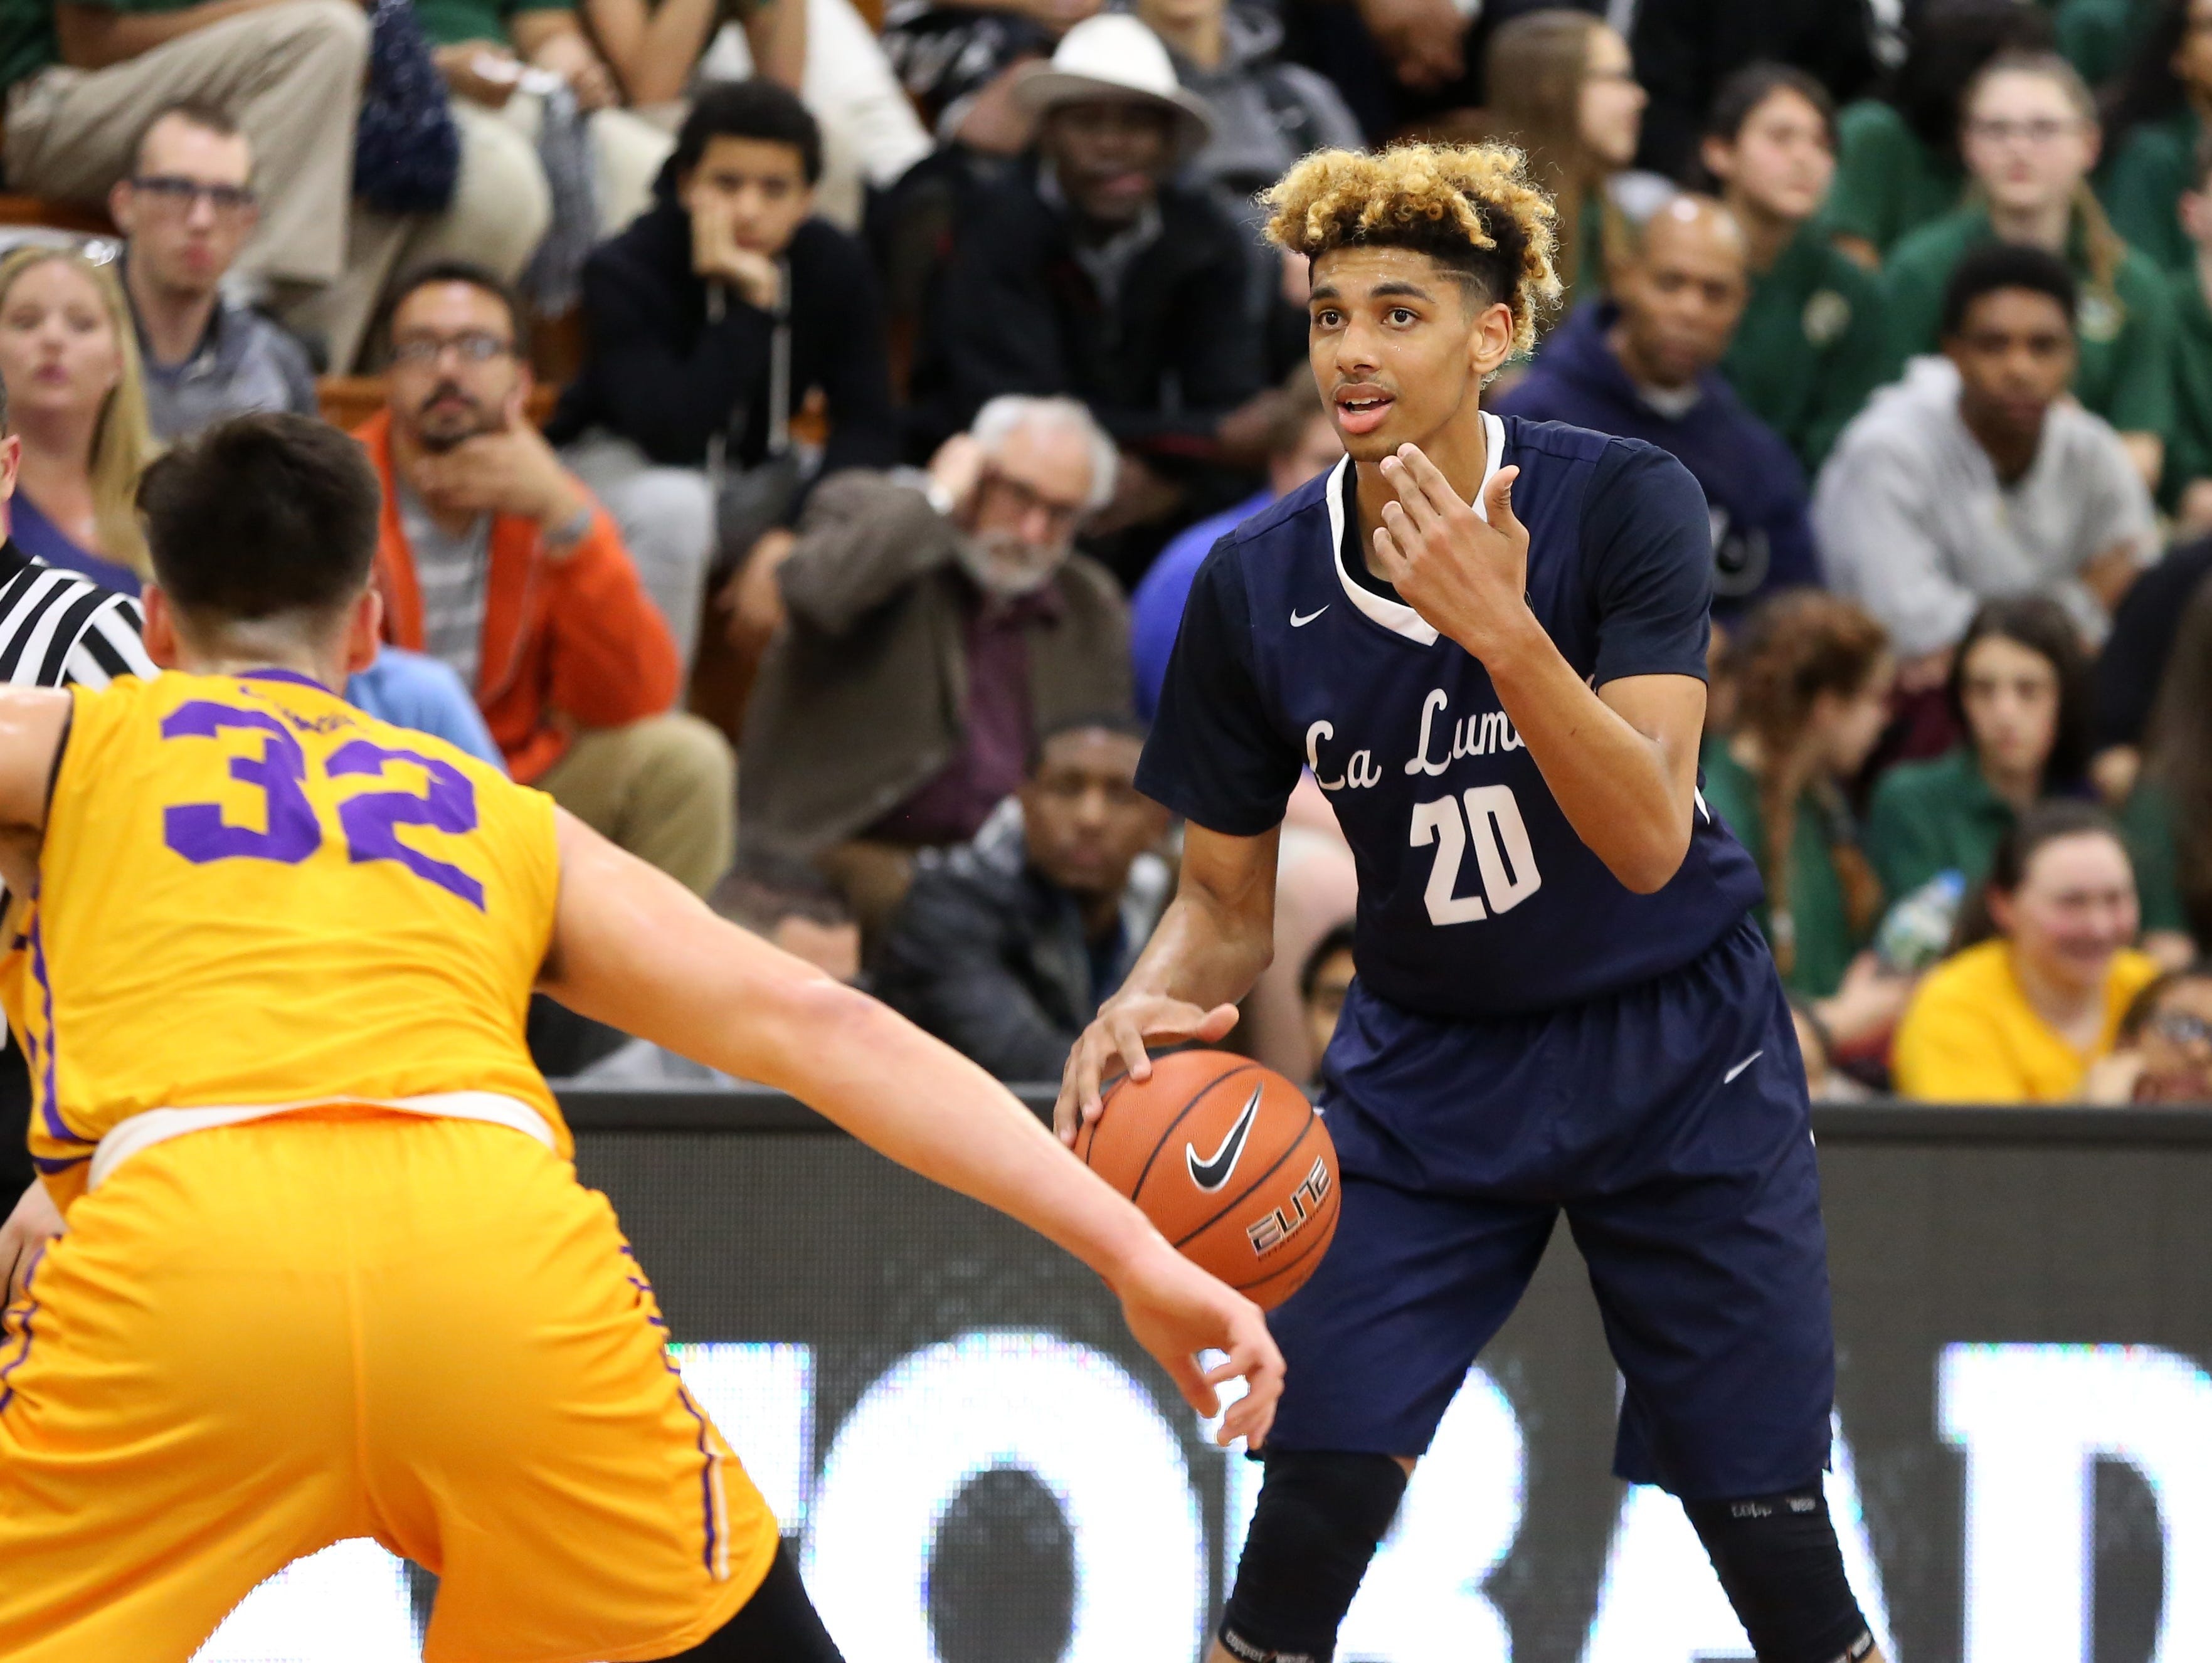 La Lumiere's Brian Bowen at the DICK's Sporting Goods High School National Basketball Tournament in April. Bowen is uncommitted, but Michigan State appears to be the front-runner.